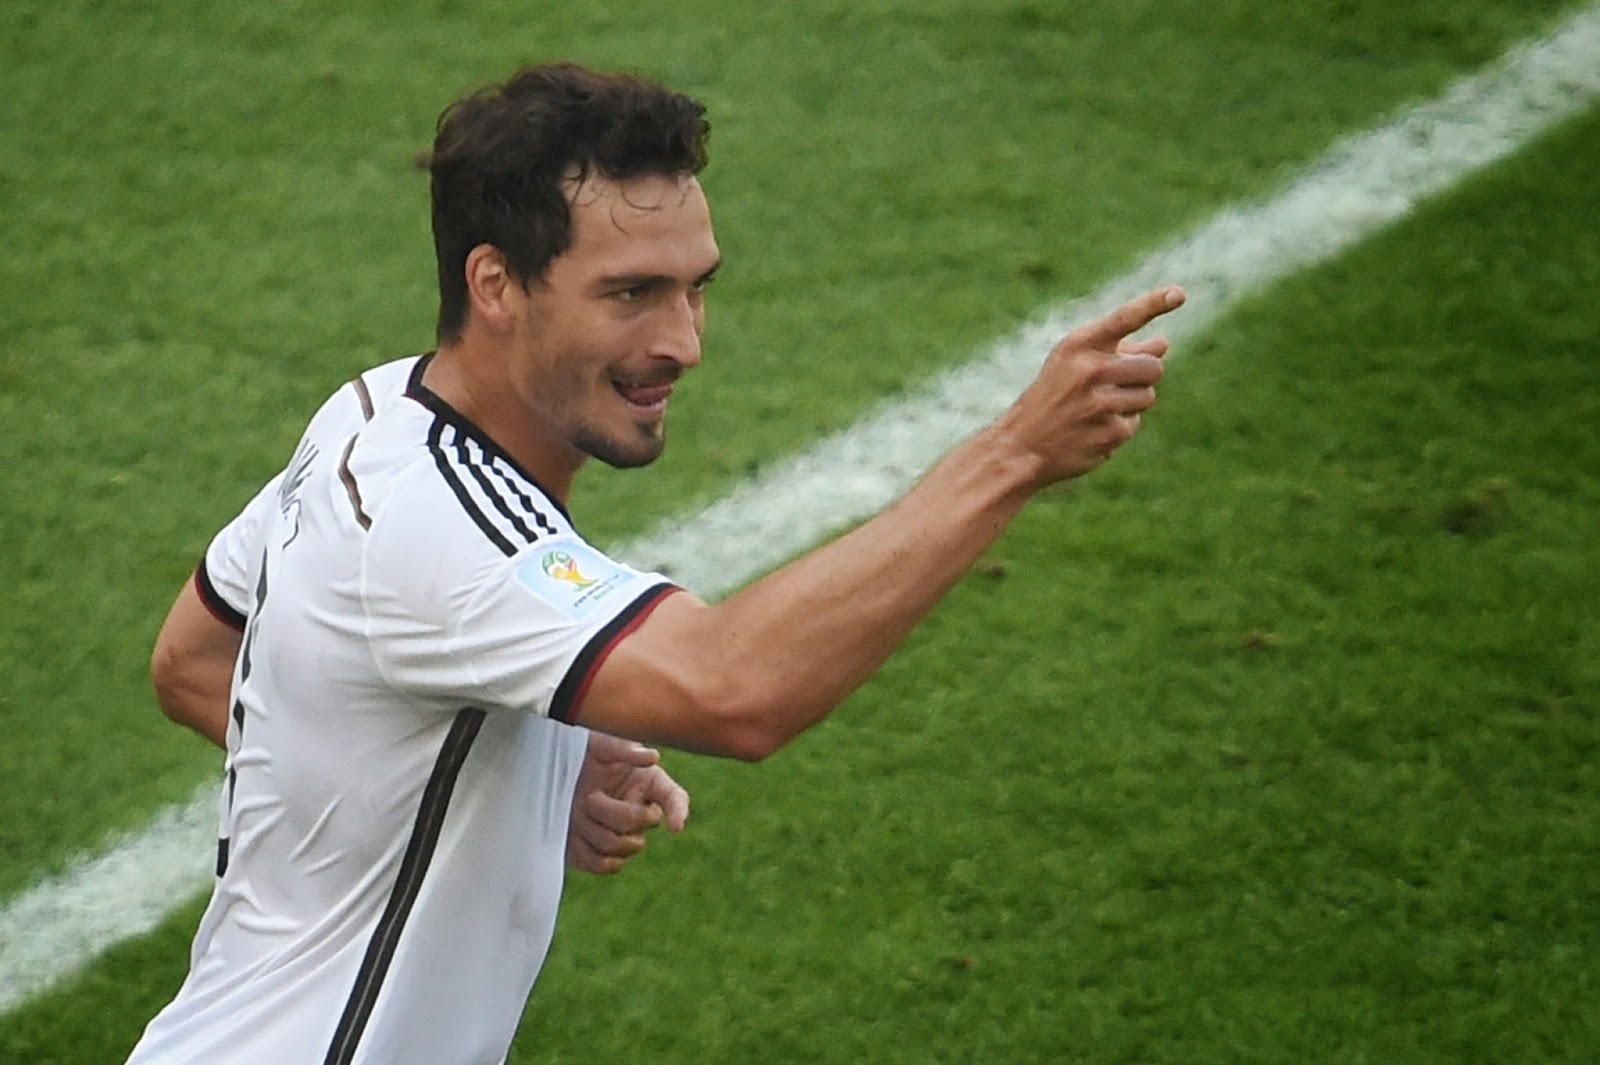 Brazil, FIFA Quarter Final, FIFA World Cup, FIFA World Cup 2014, FIFA World Cup Knockout, Football, France Match, France vs Germany, Germany Match, Knockout Stage, Quarter Final Matches, Round of 16, Mats Hummels, Mesut Ozil,